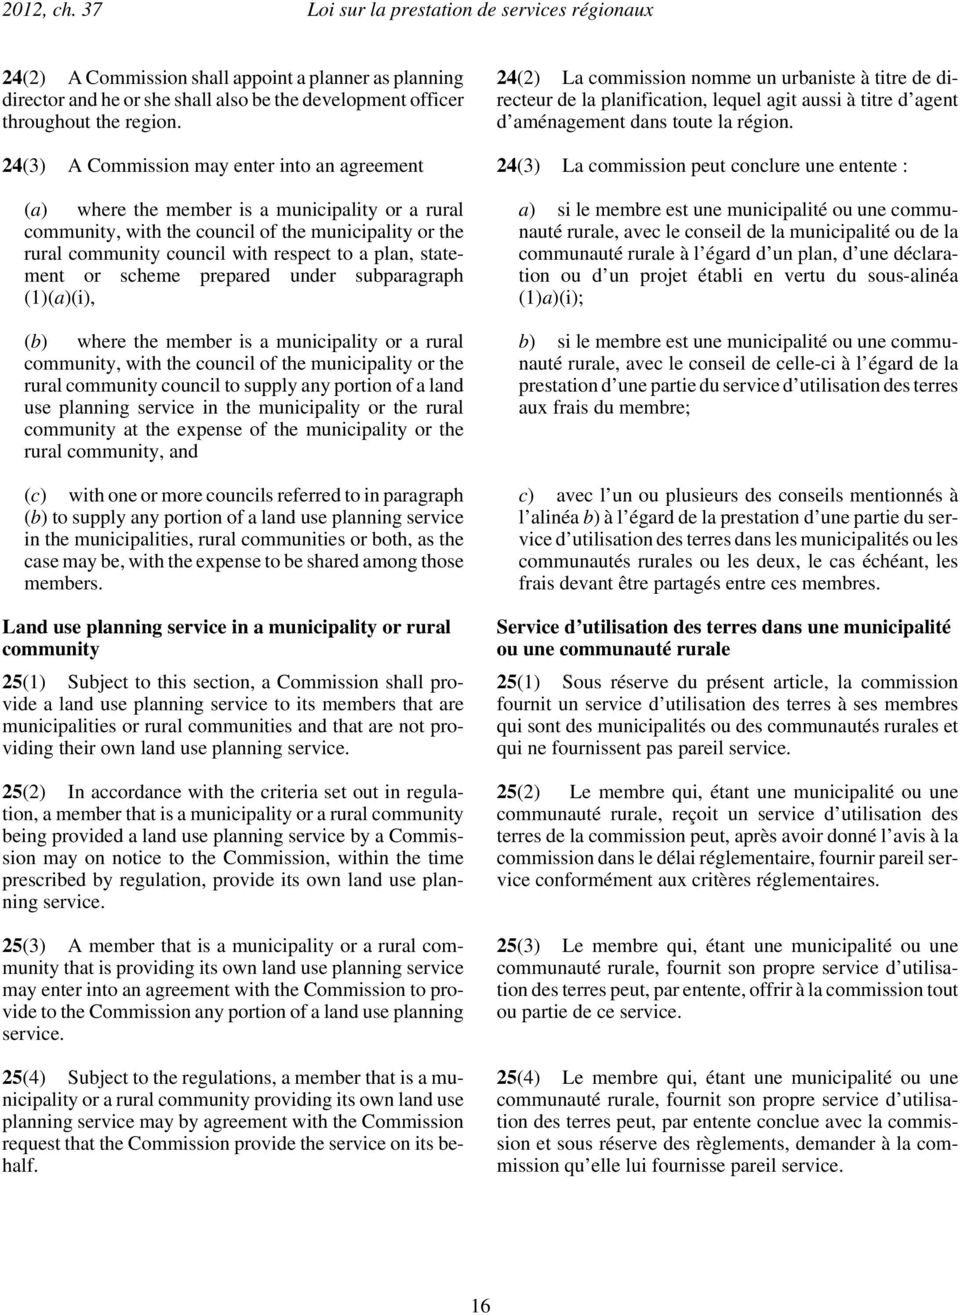 24(3) A Commission may enter into an agreement 24(3) La commission peut conclure une entente : (a) where the member is a municipality or a rural community, with the council of the municipality or the